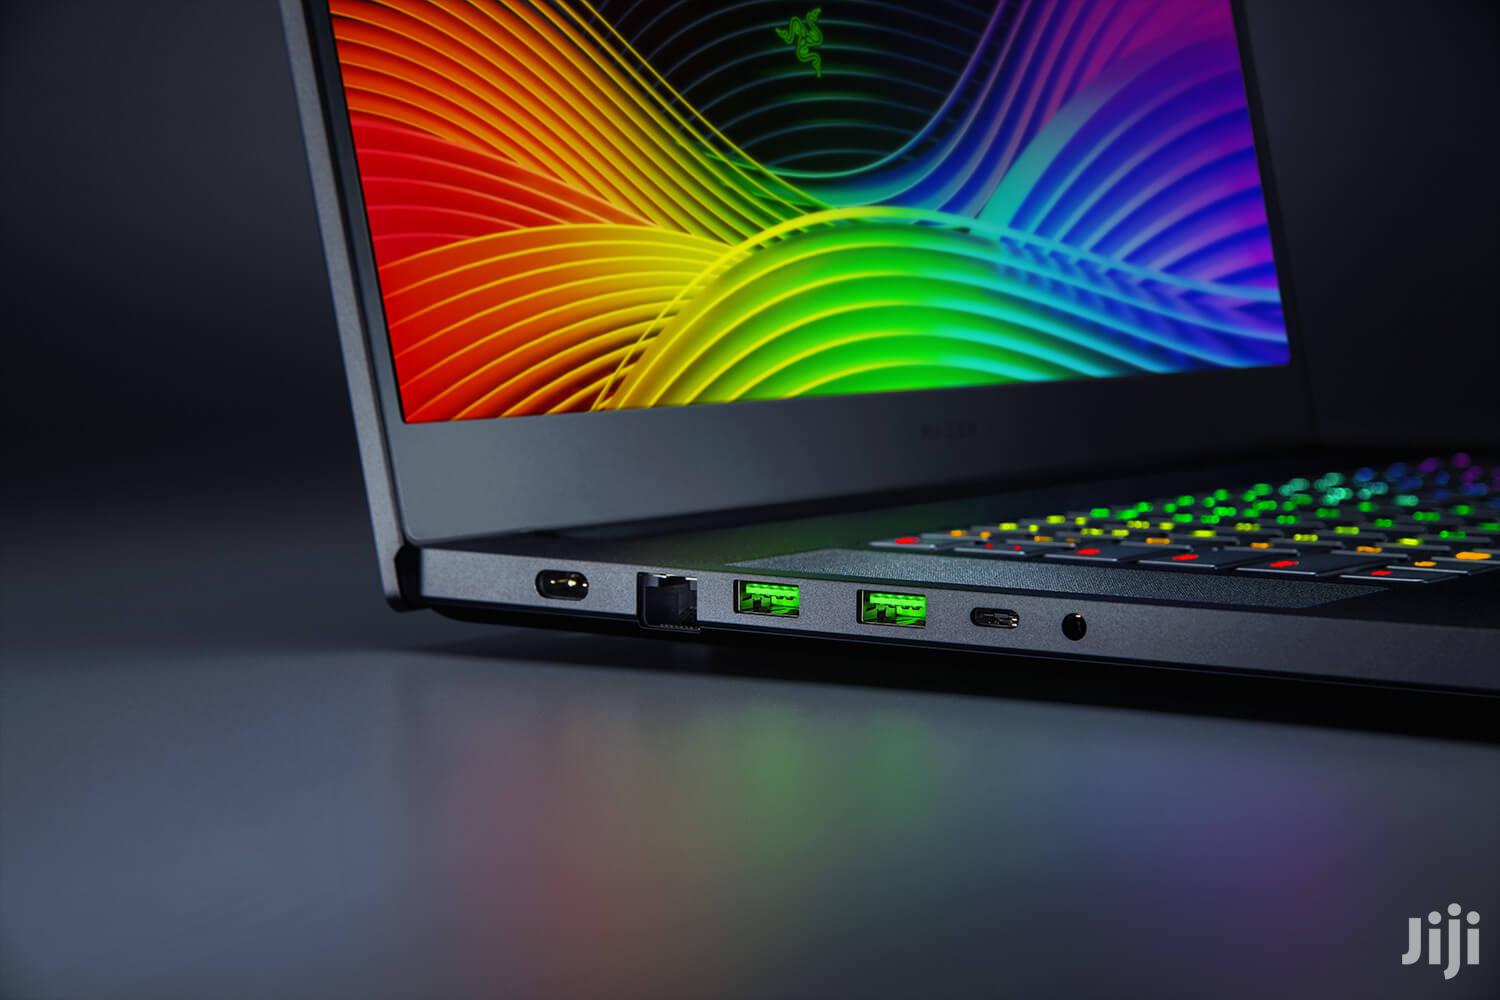 New Laptop Razer Blade Pro 16GB Intel Core I7 SSD 512GB | Laptops & Computers for sale in Kokomlemle, Greater Accra, Ghana